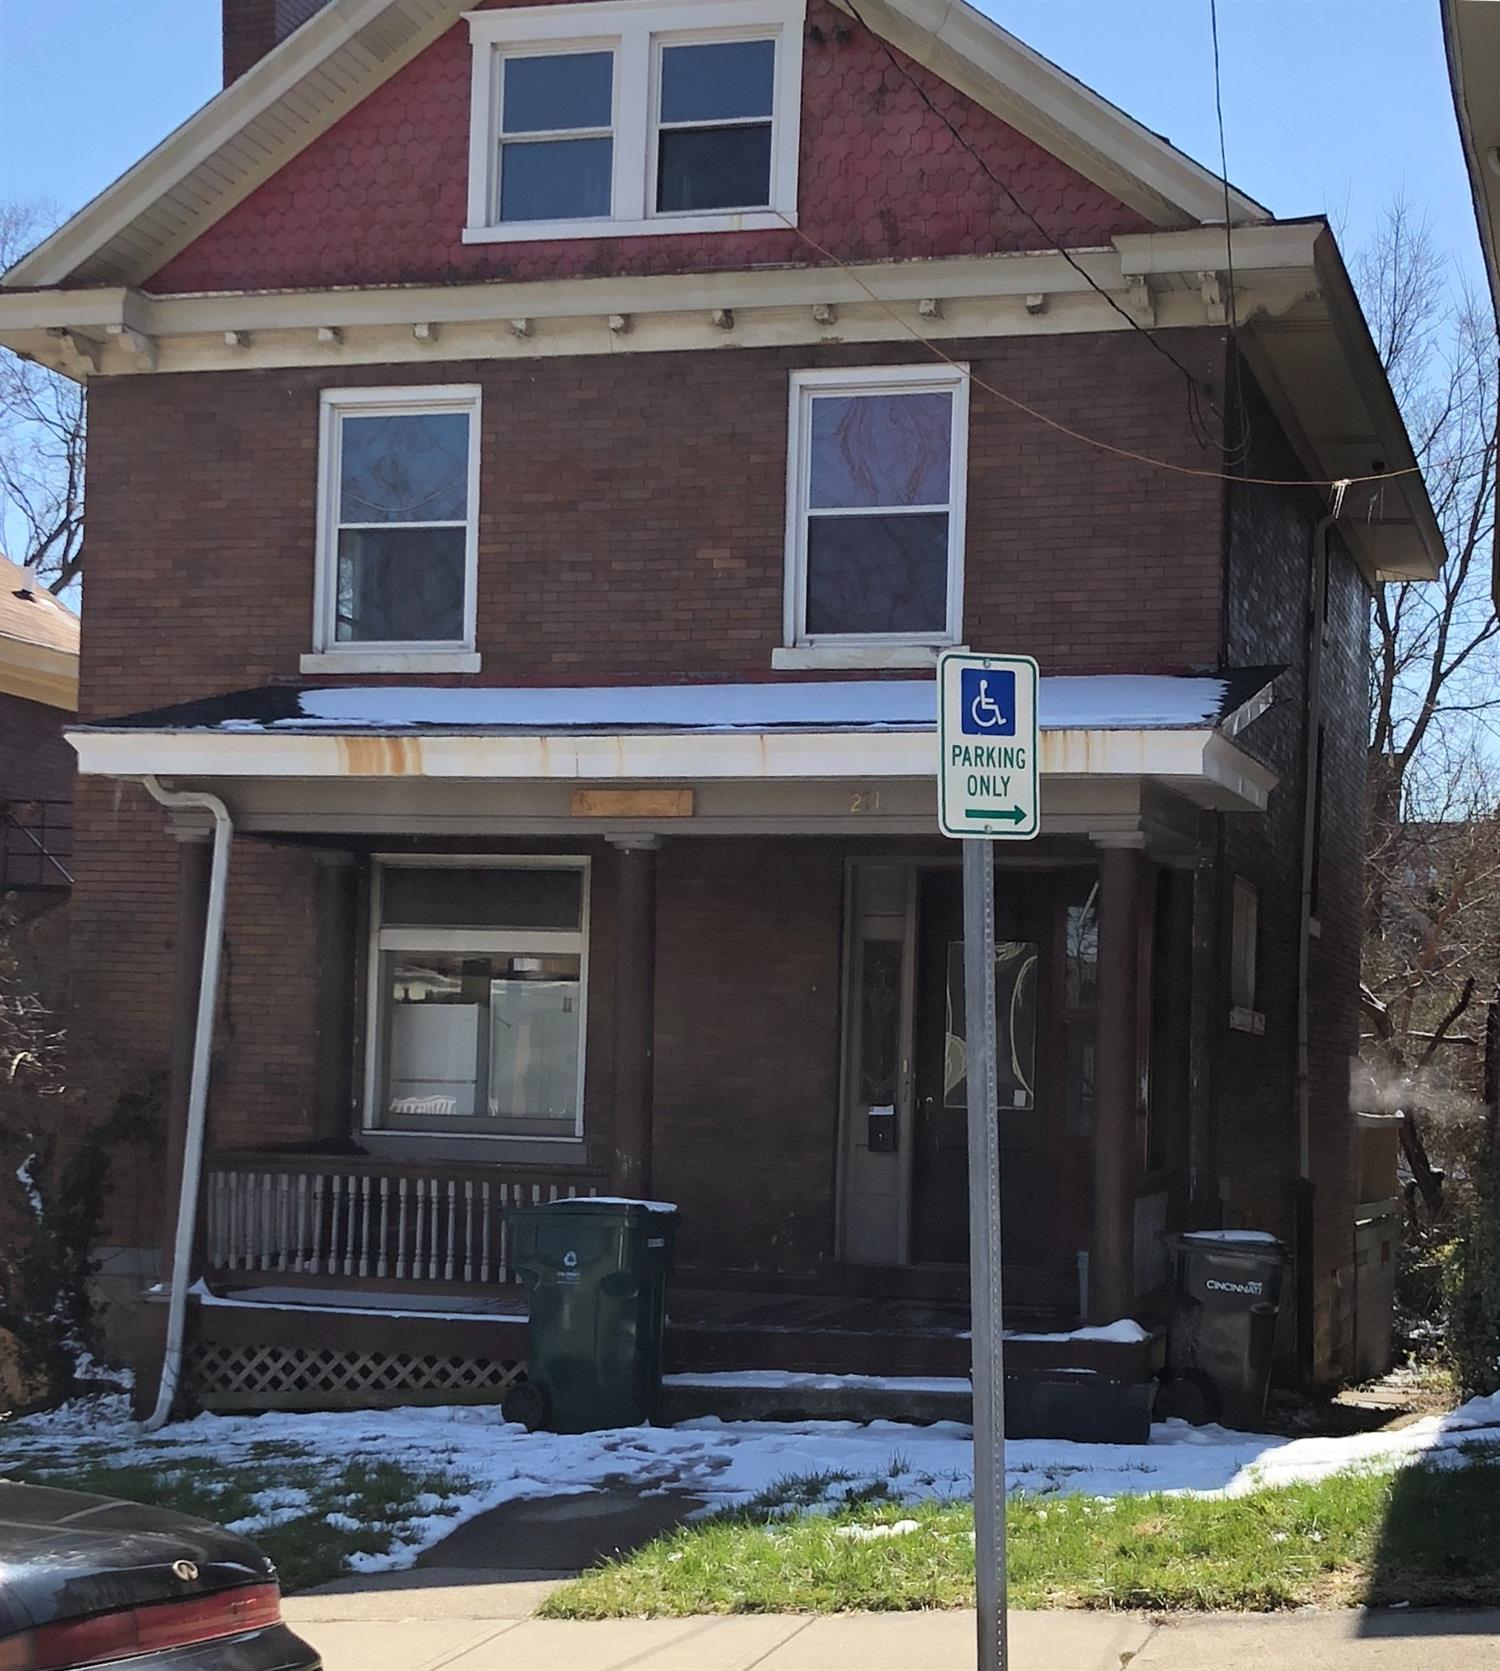 Partially Renovated Home located minutes away from UC, hospitals and downtown**In Need of Some TLC****Motivated Sellers****